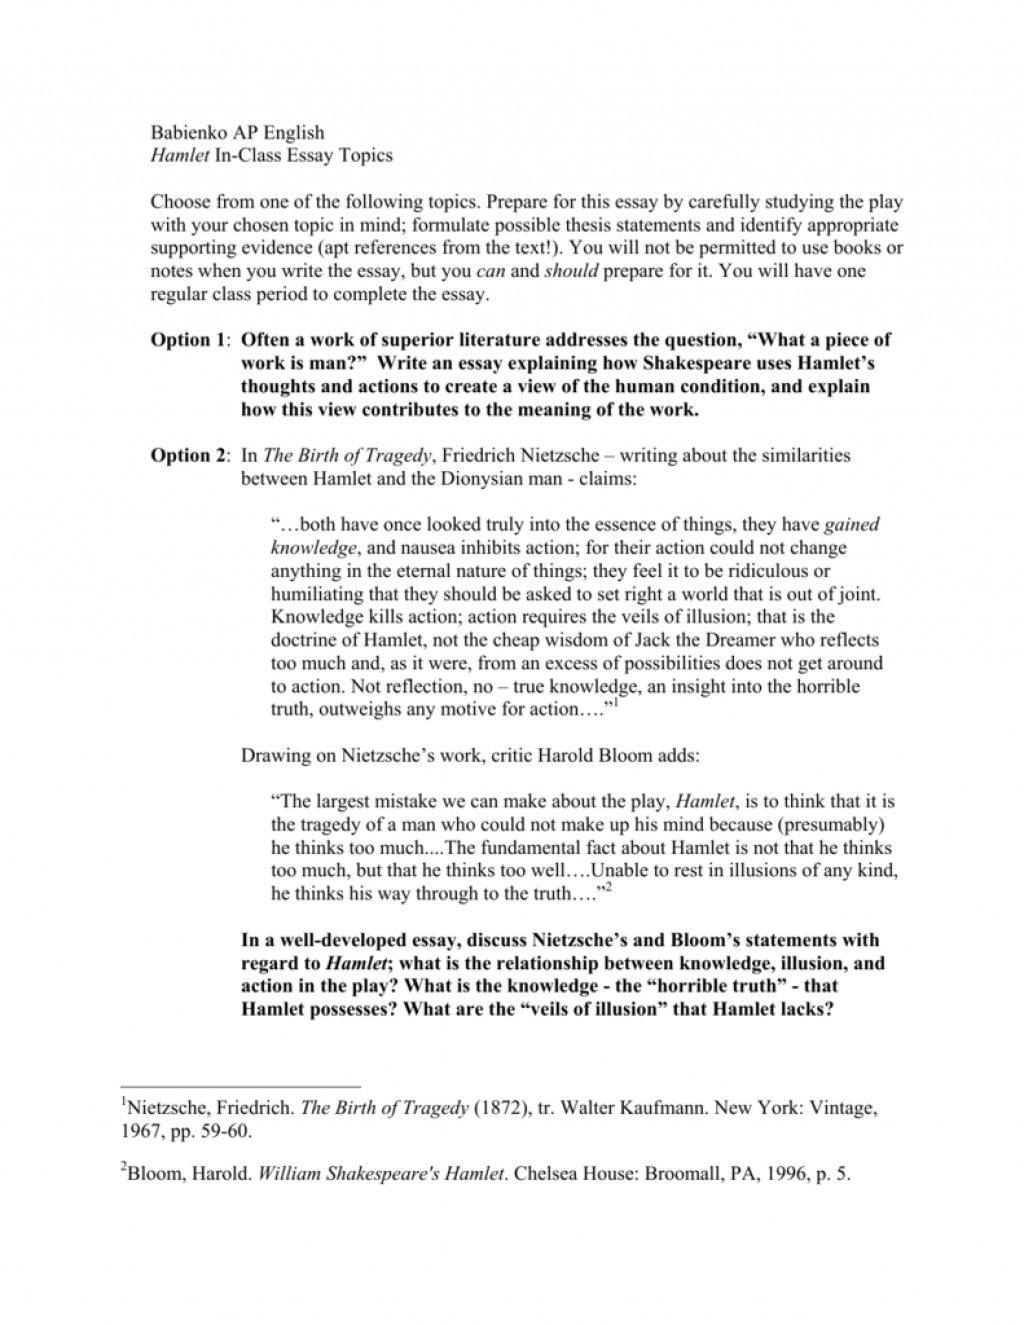 004 008676472 1 Essay Example Hamlet Rare Topics High School And Answers Ap Literature Prompt Large